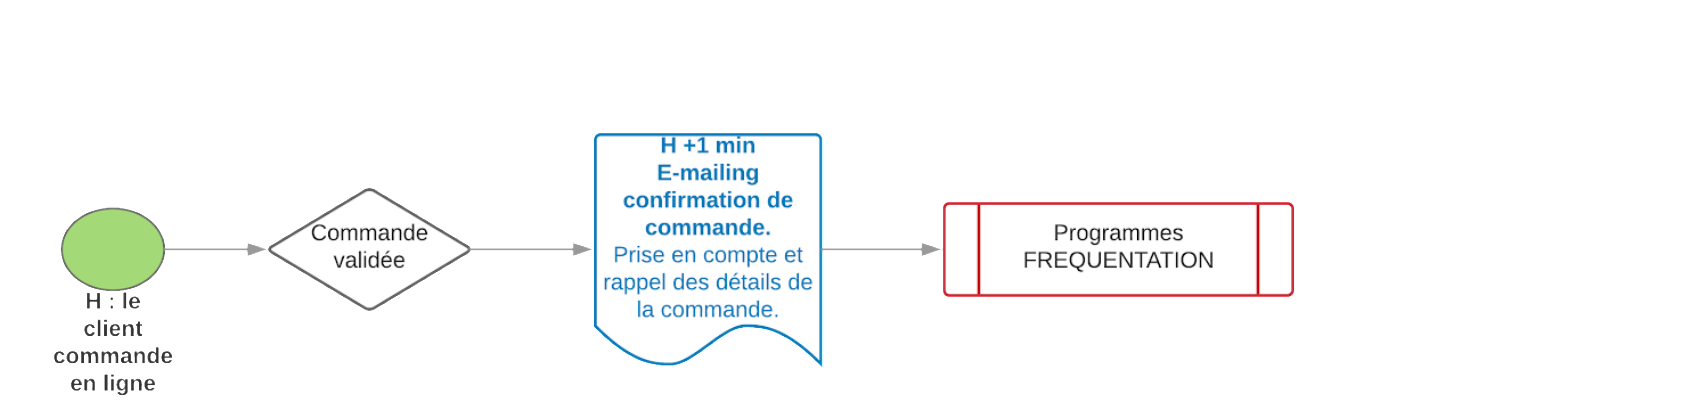 diagramme confirmation commande web